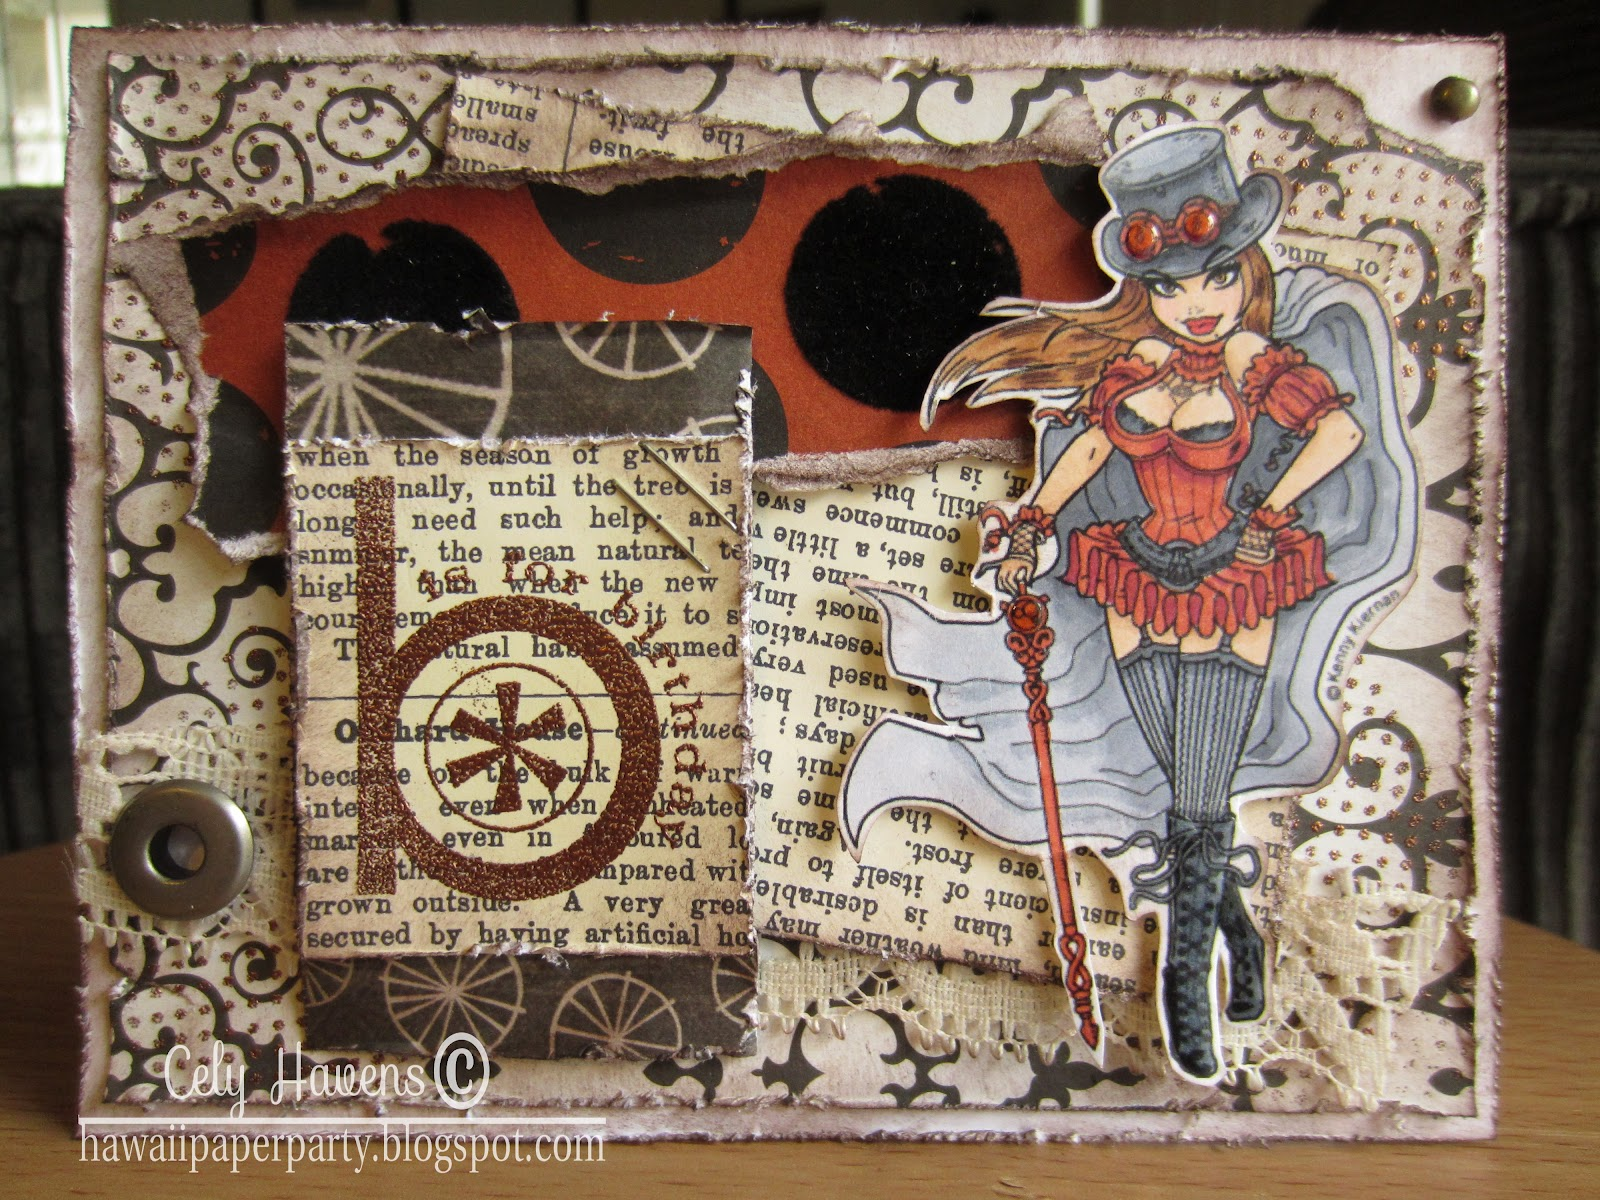 Hawaii Paper Party Steampunk Birthday Card